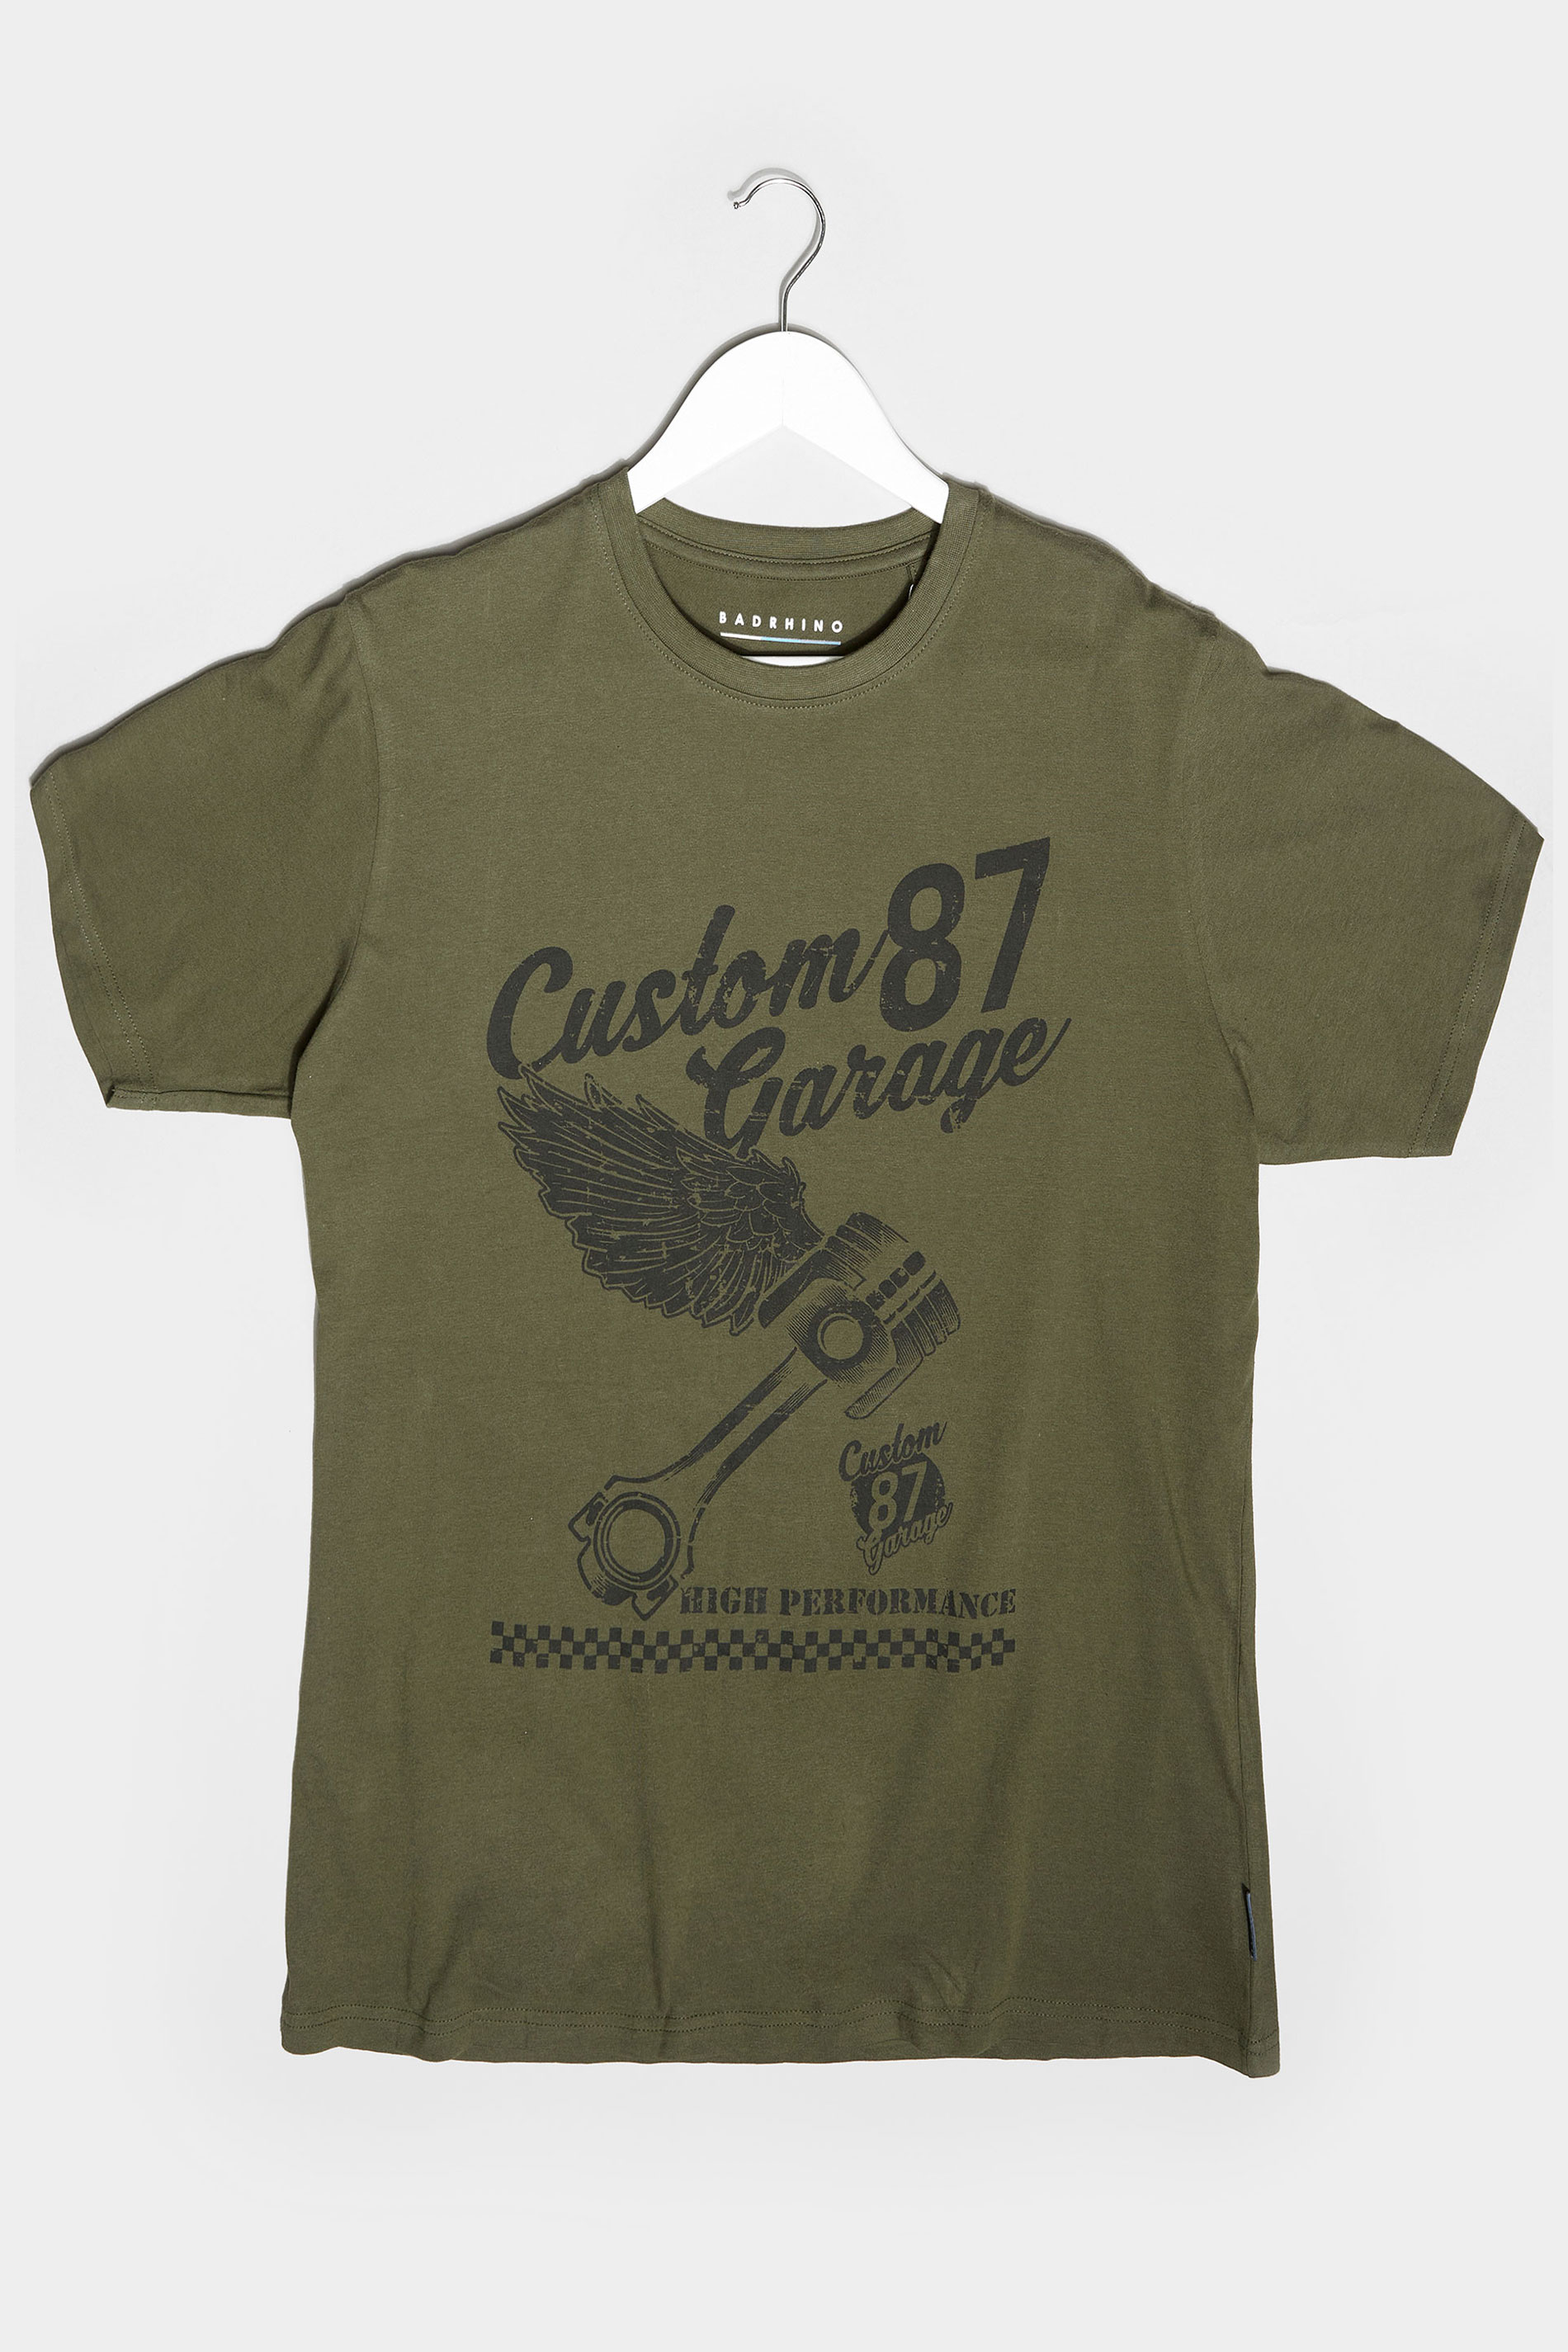 BadRhino Khaki Custom Garage Graphic Print T-Shirt